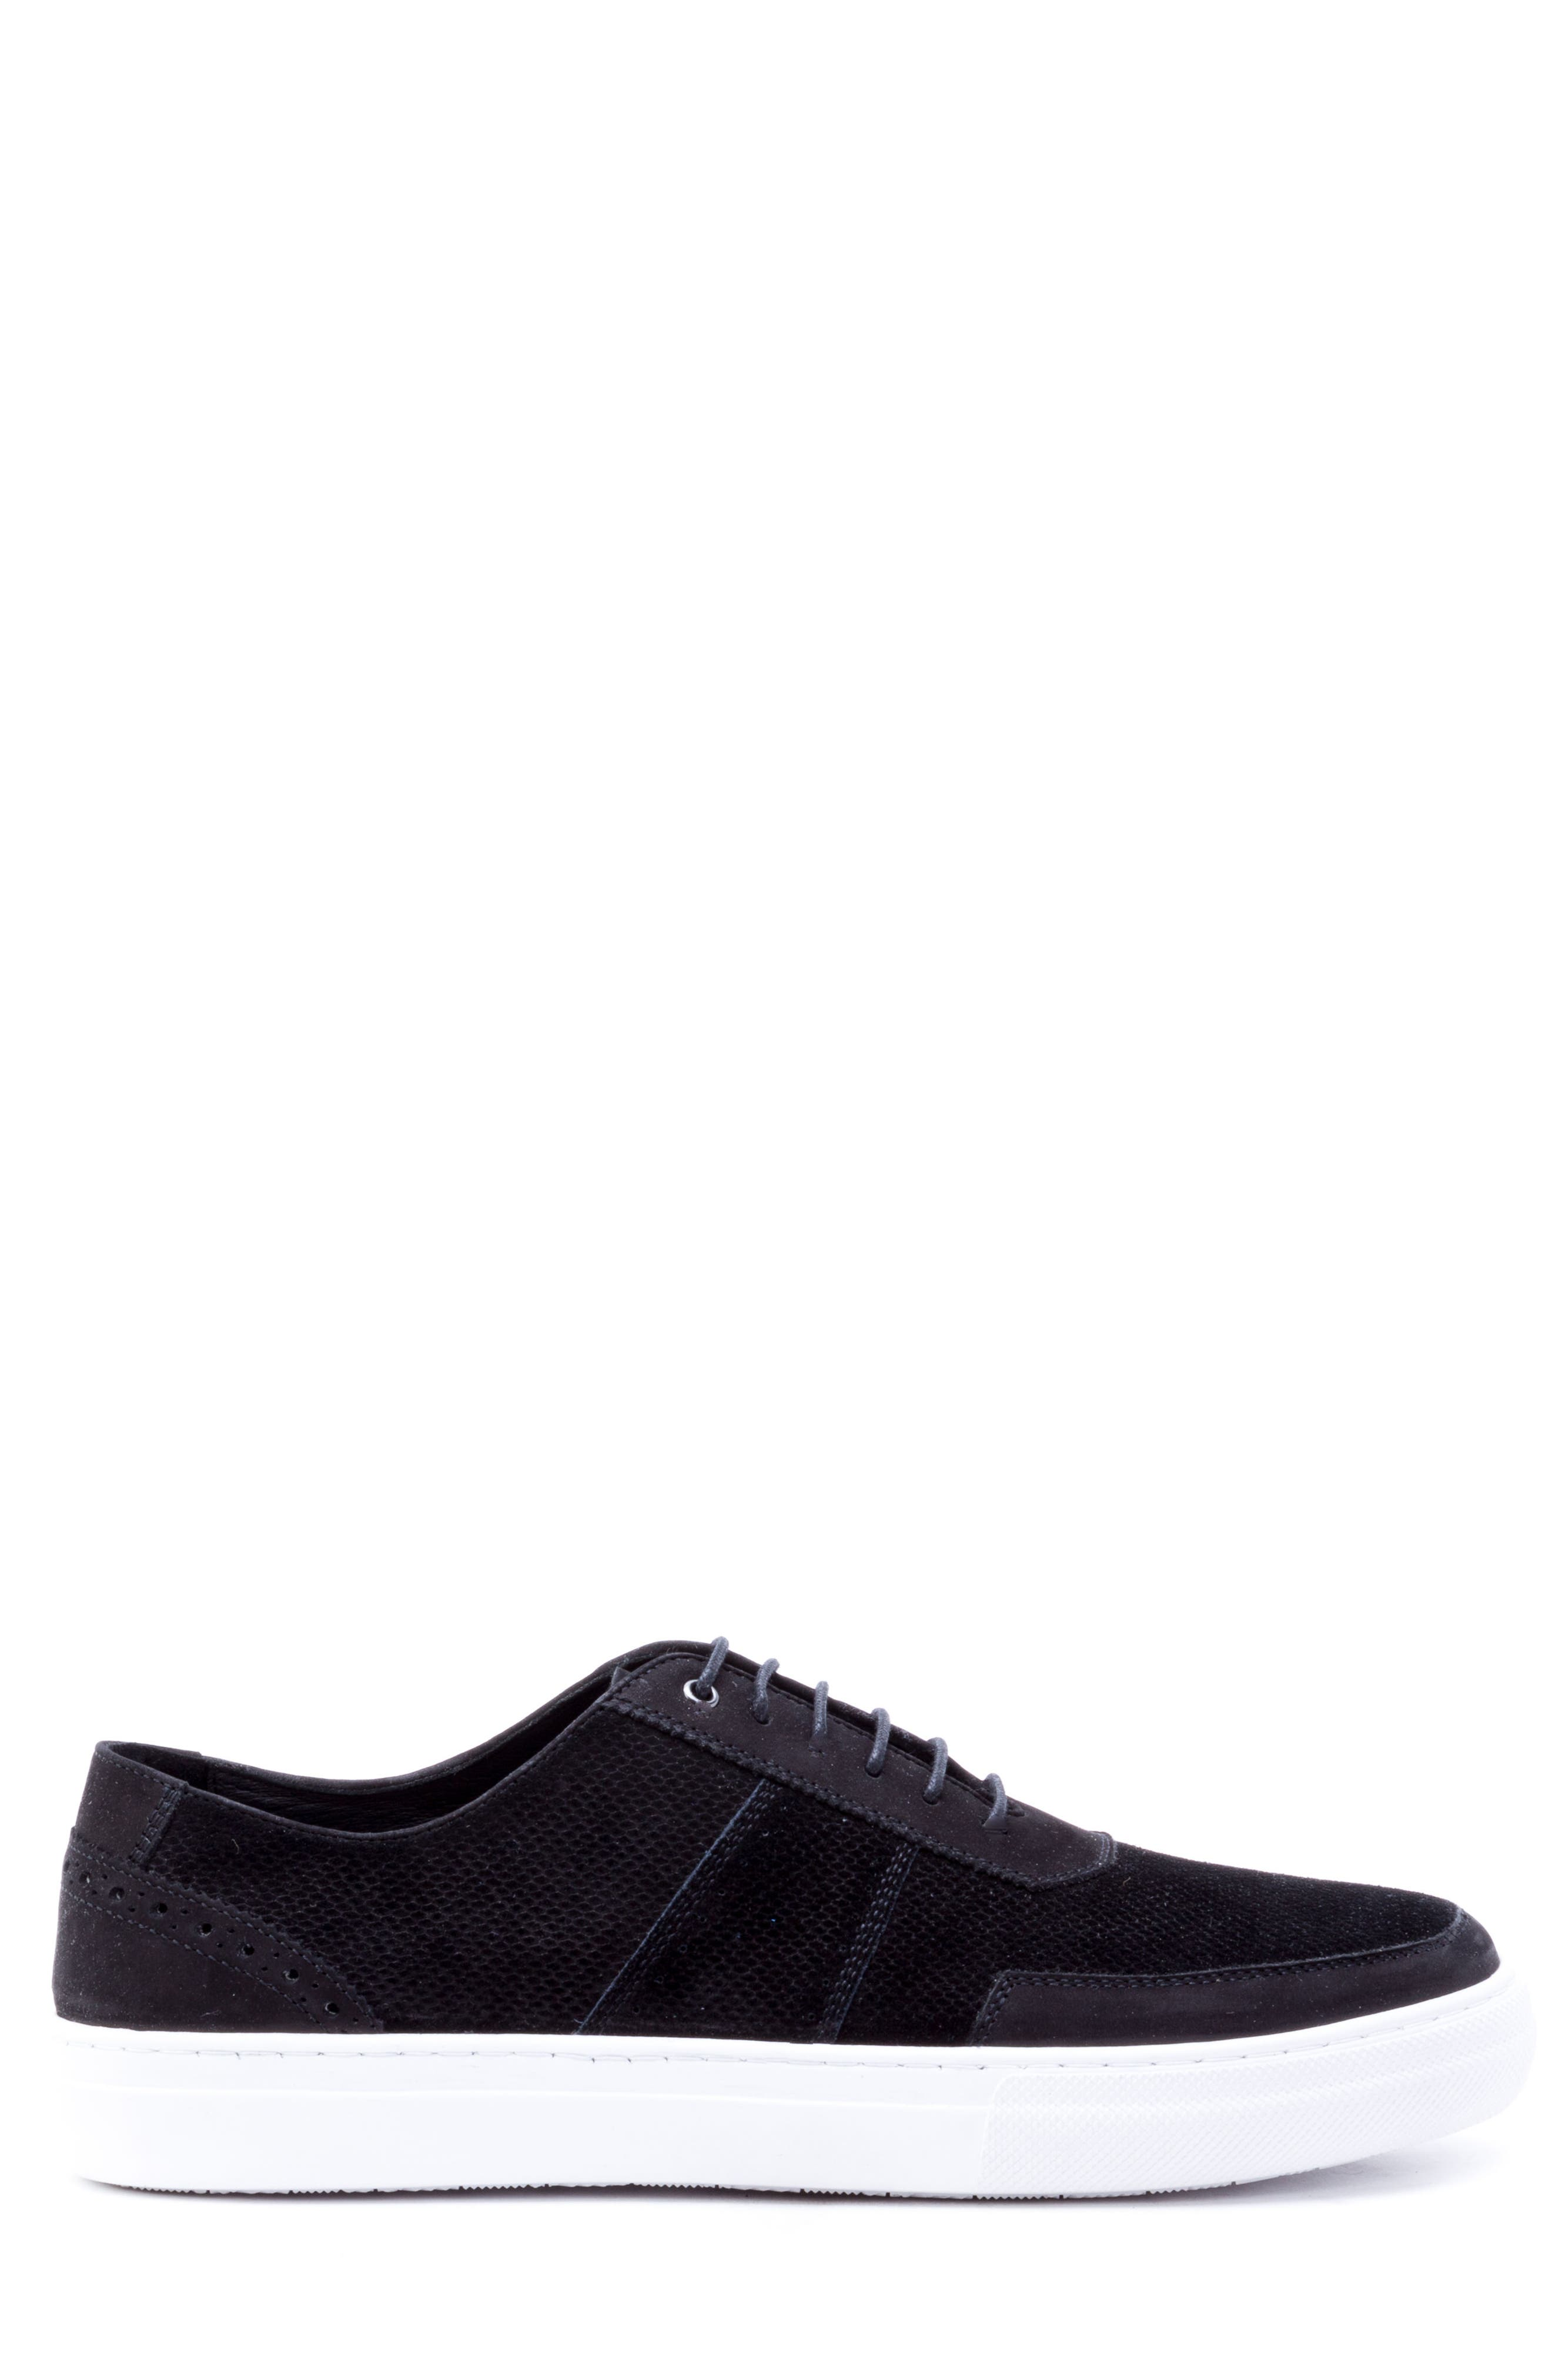 House Low Top Sneaker,                             Alternate thumbnail 3, color,                             Black Suede/ Leather